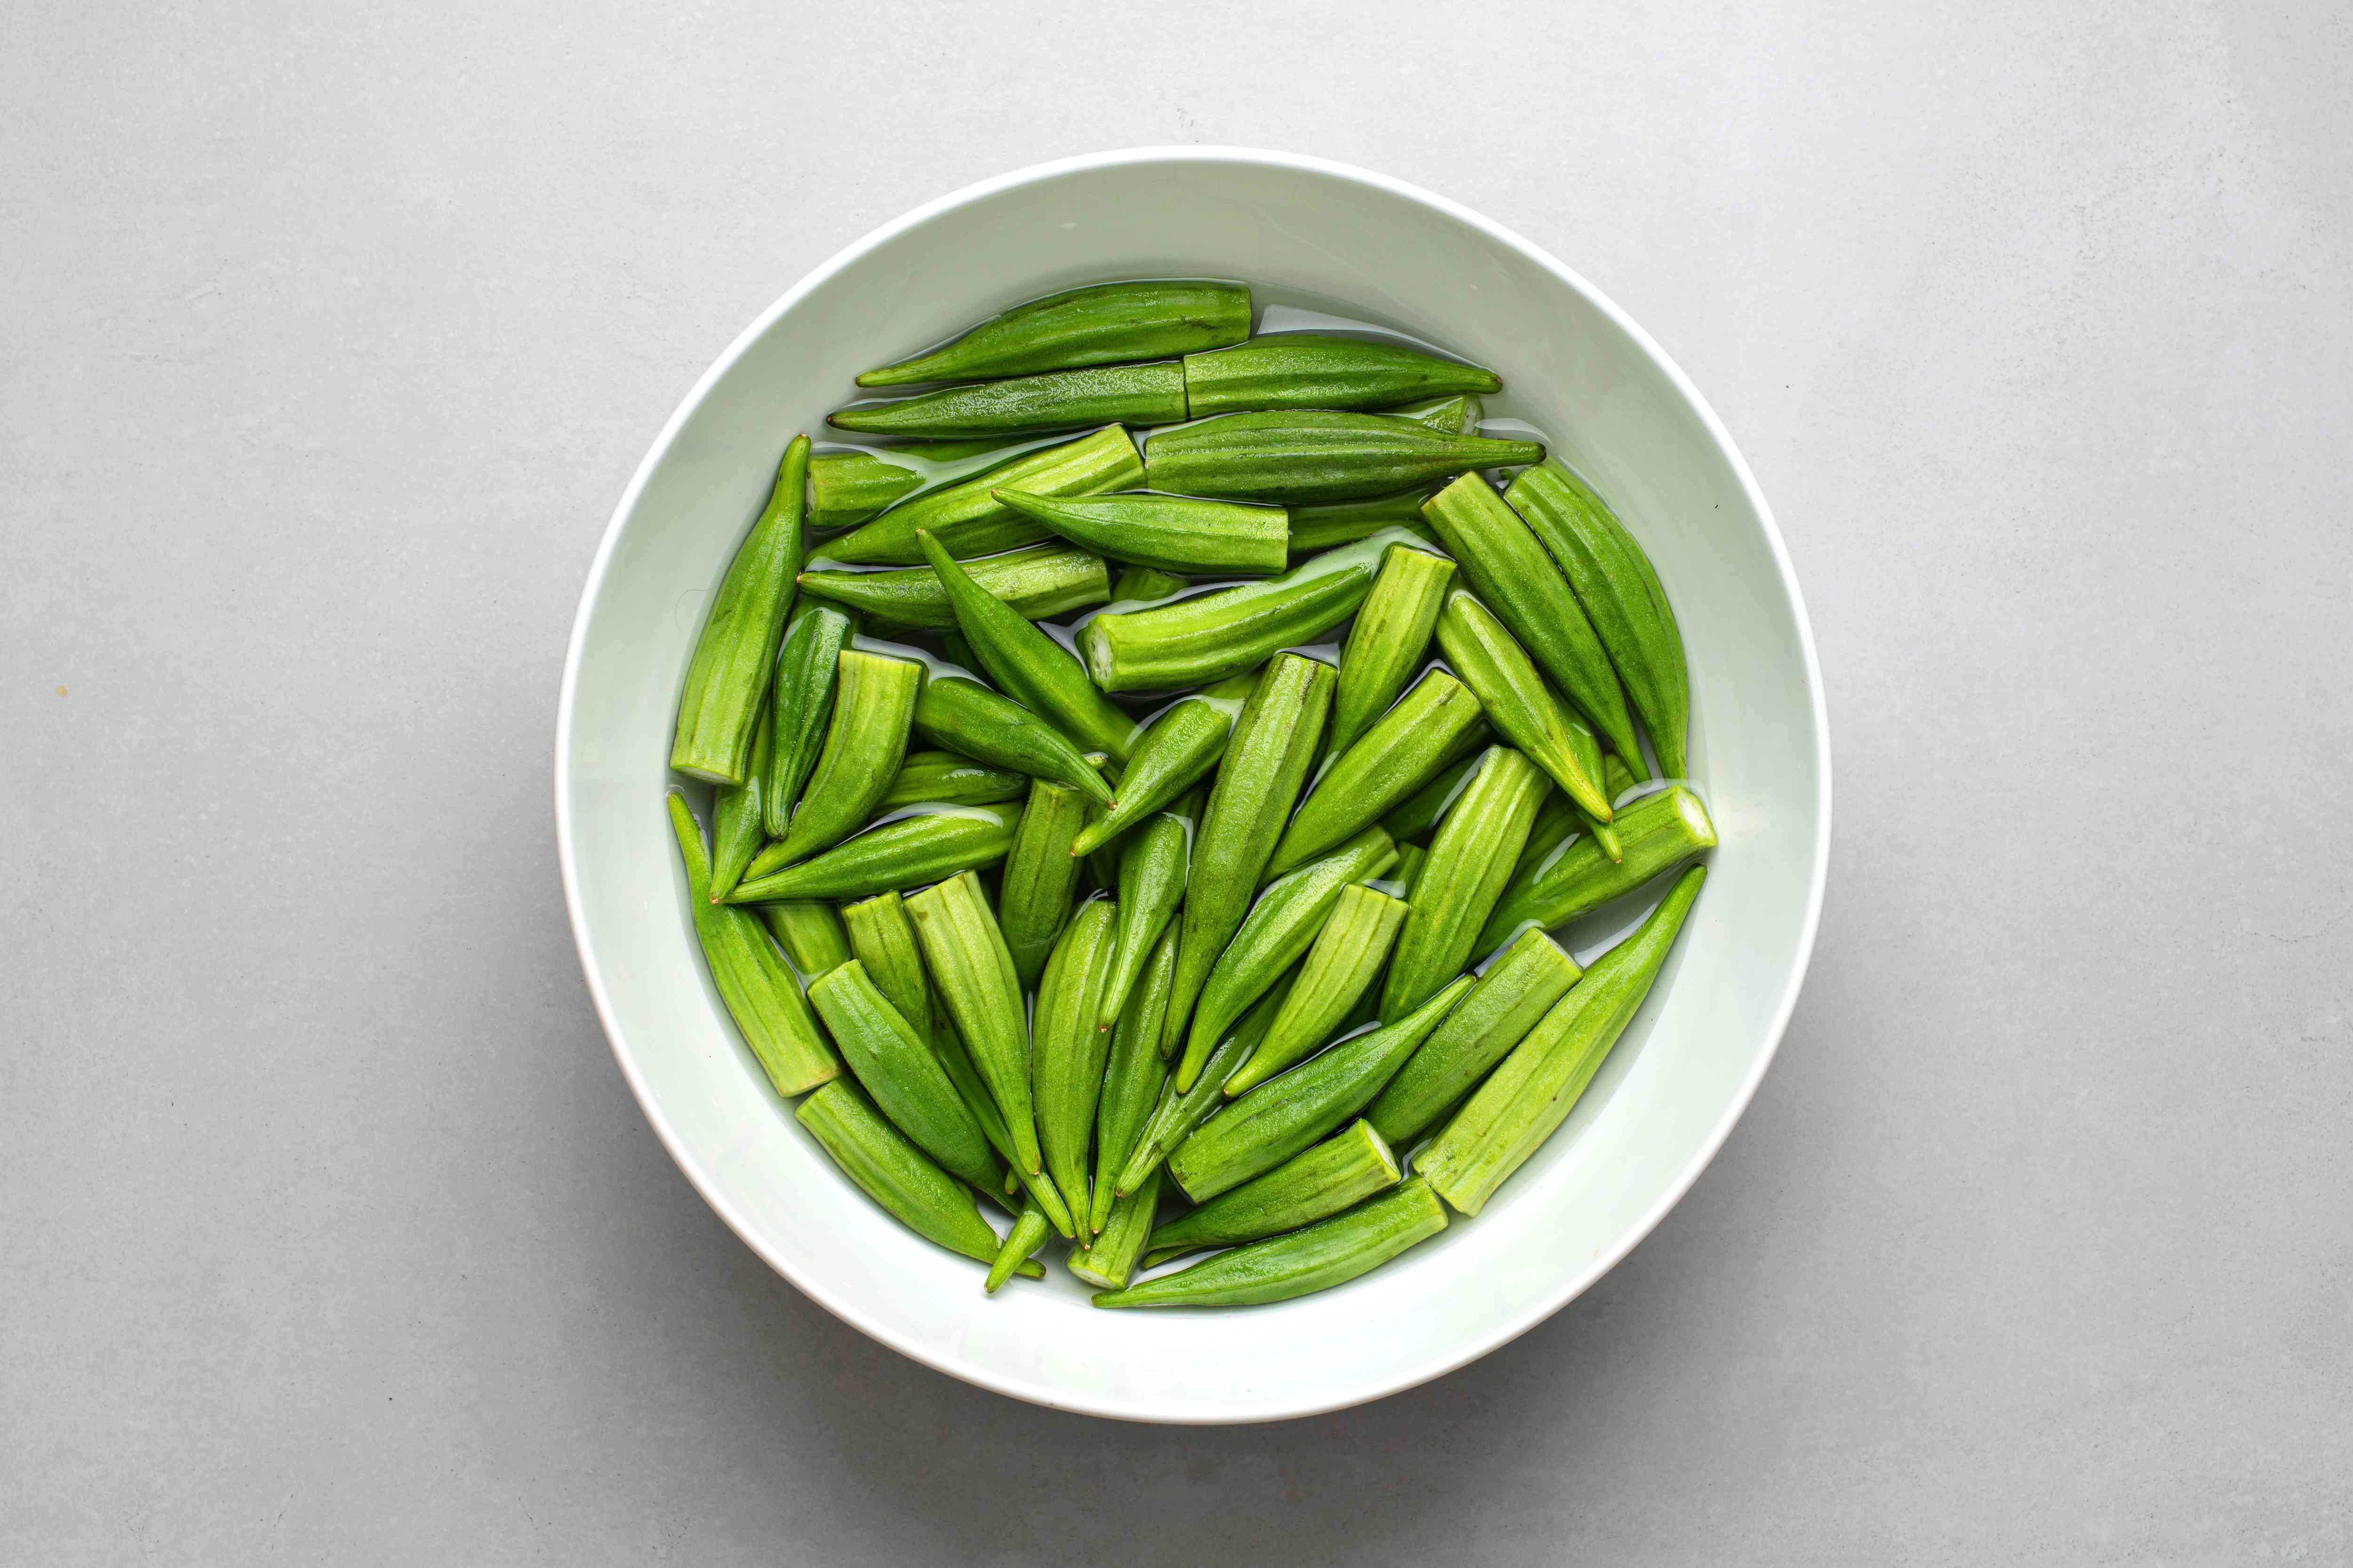 okra, water, white vinegar, and salt in a bowl